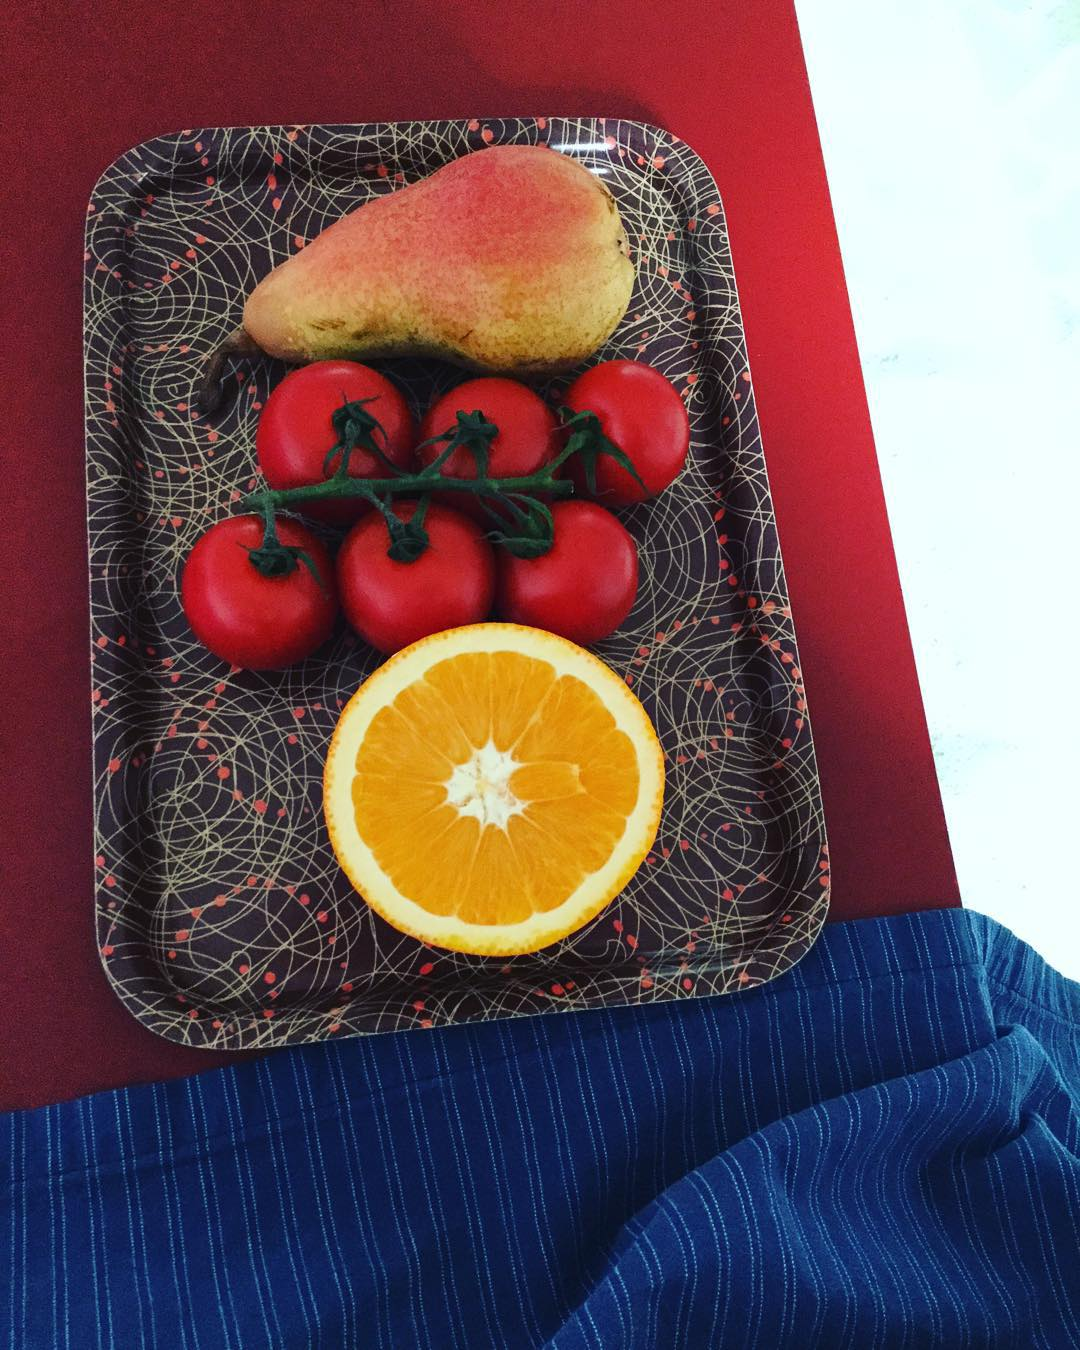 the pear, the tomatoes and the orange